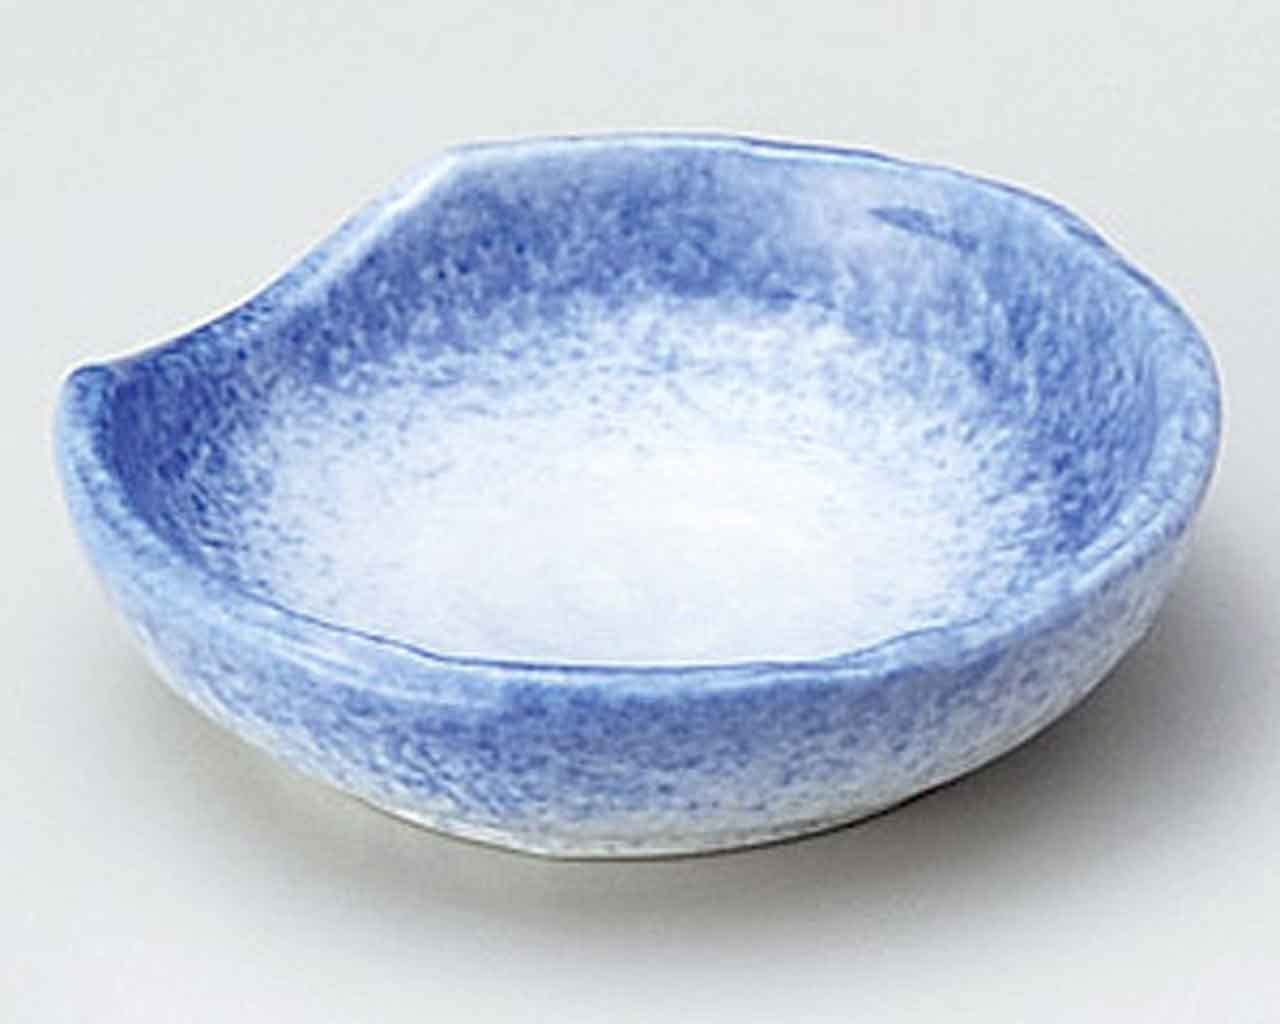 Sumi Blue Blow 3.5inch Set of 5 Small Plates White porcelain Made in Japan